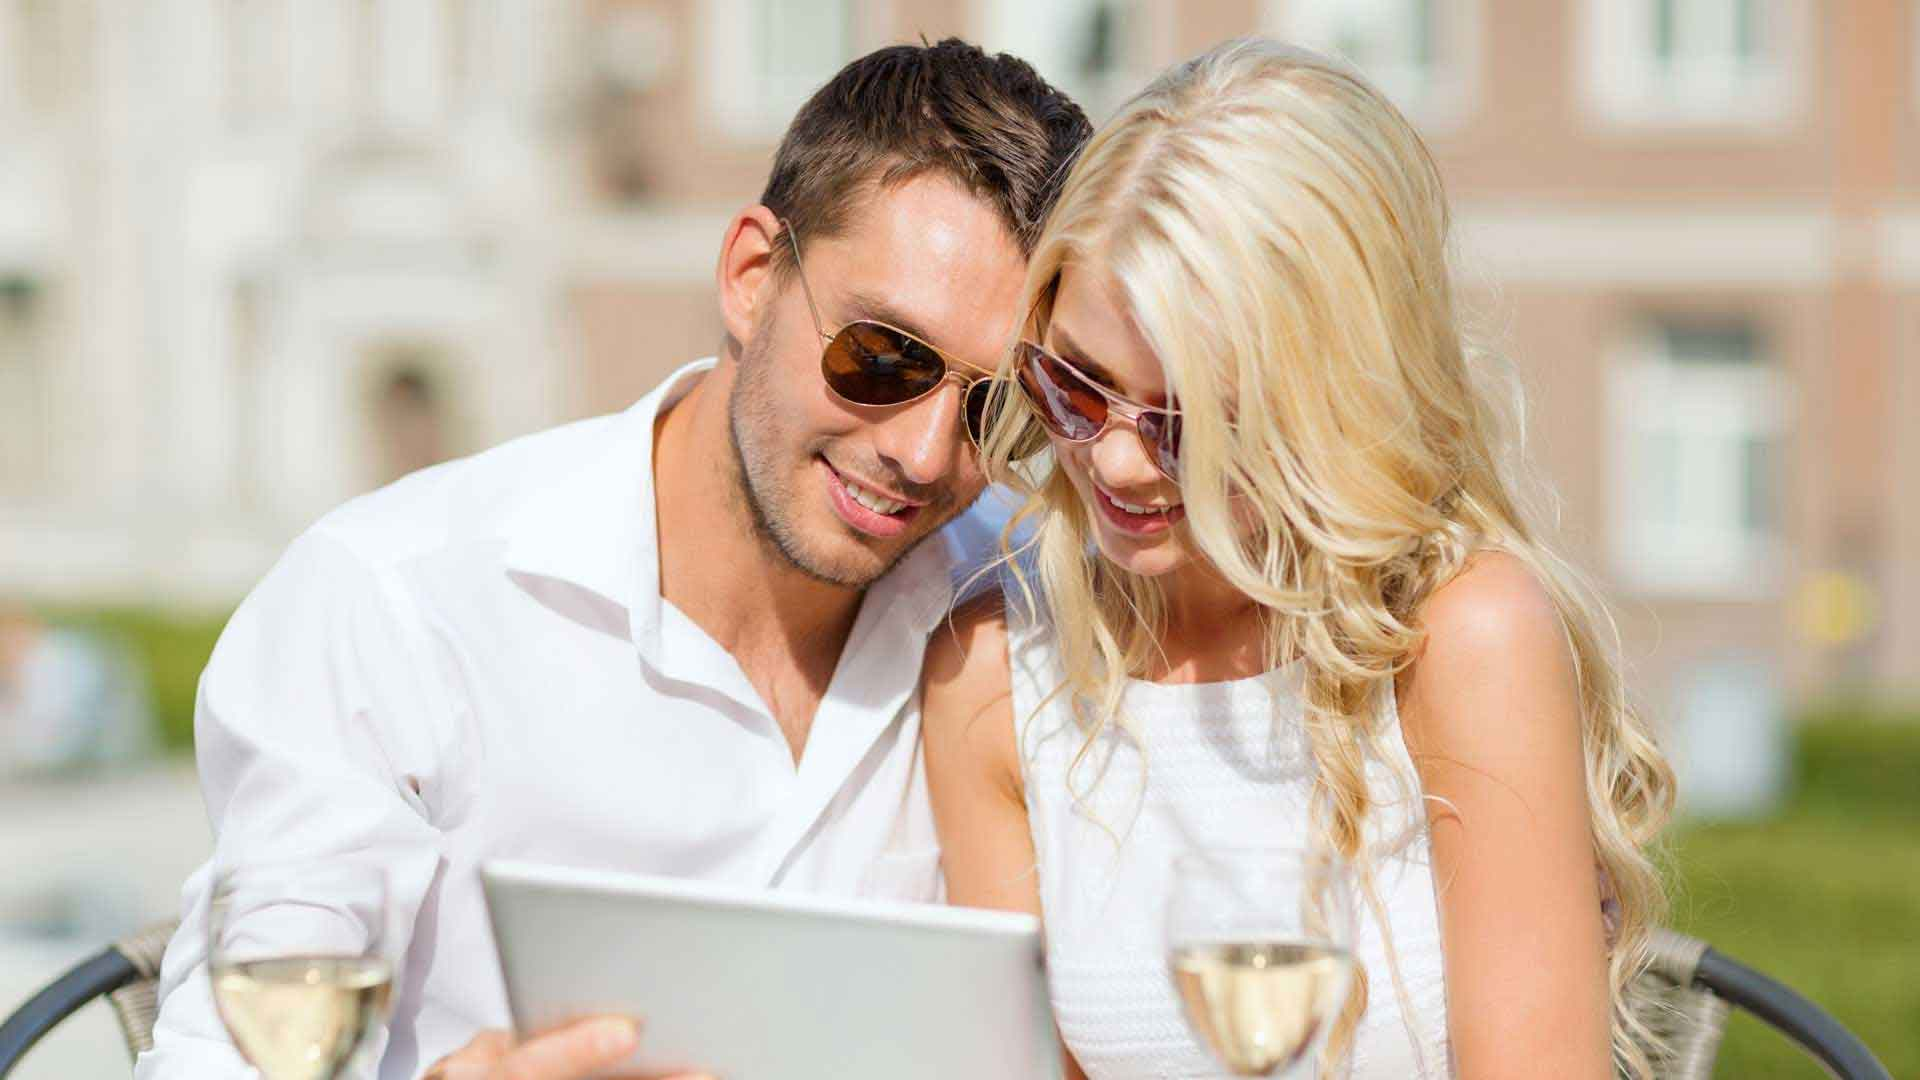 Dateplaats.be Online dating communities